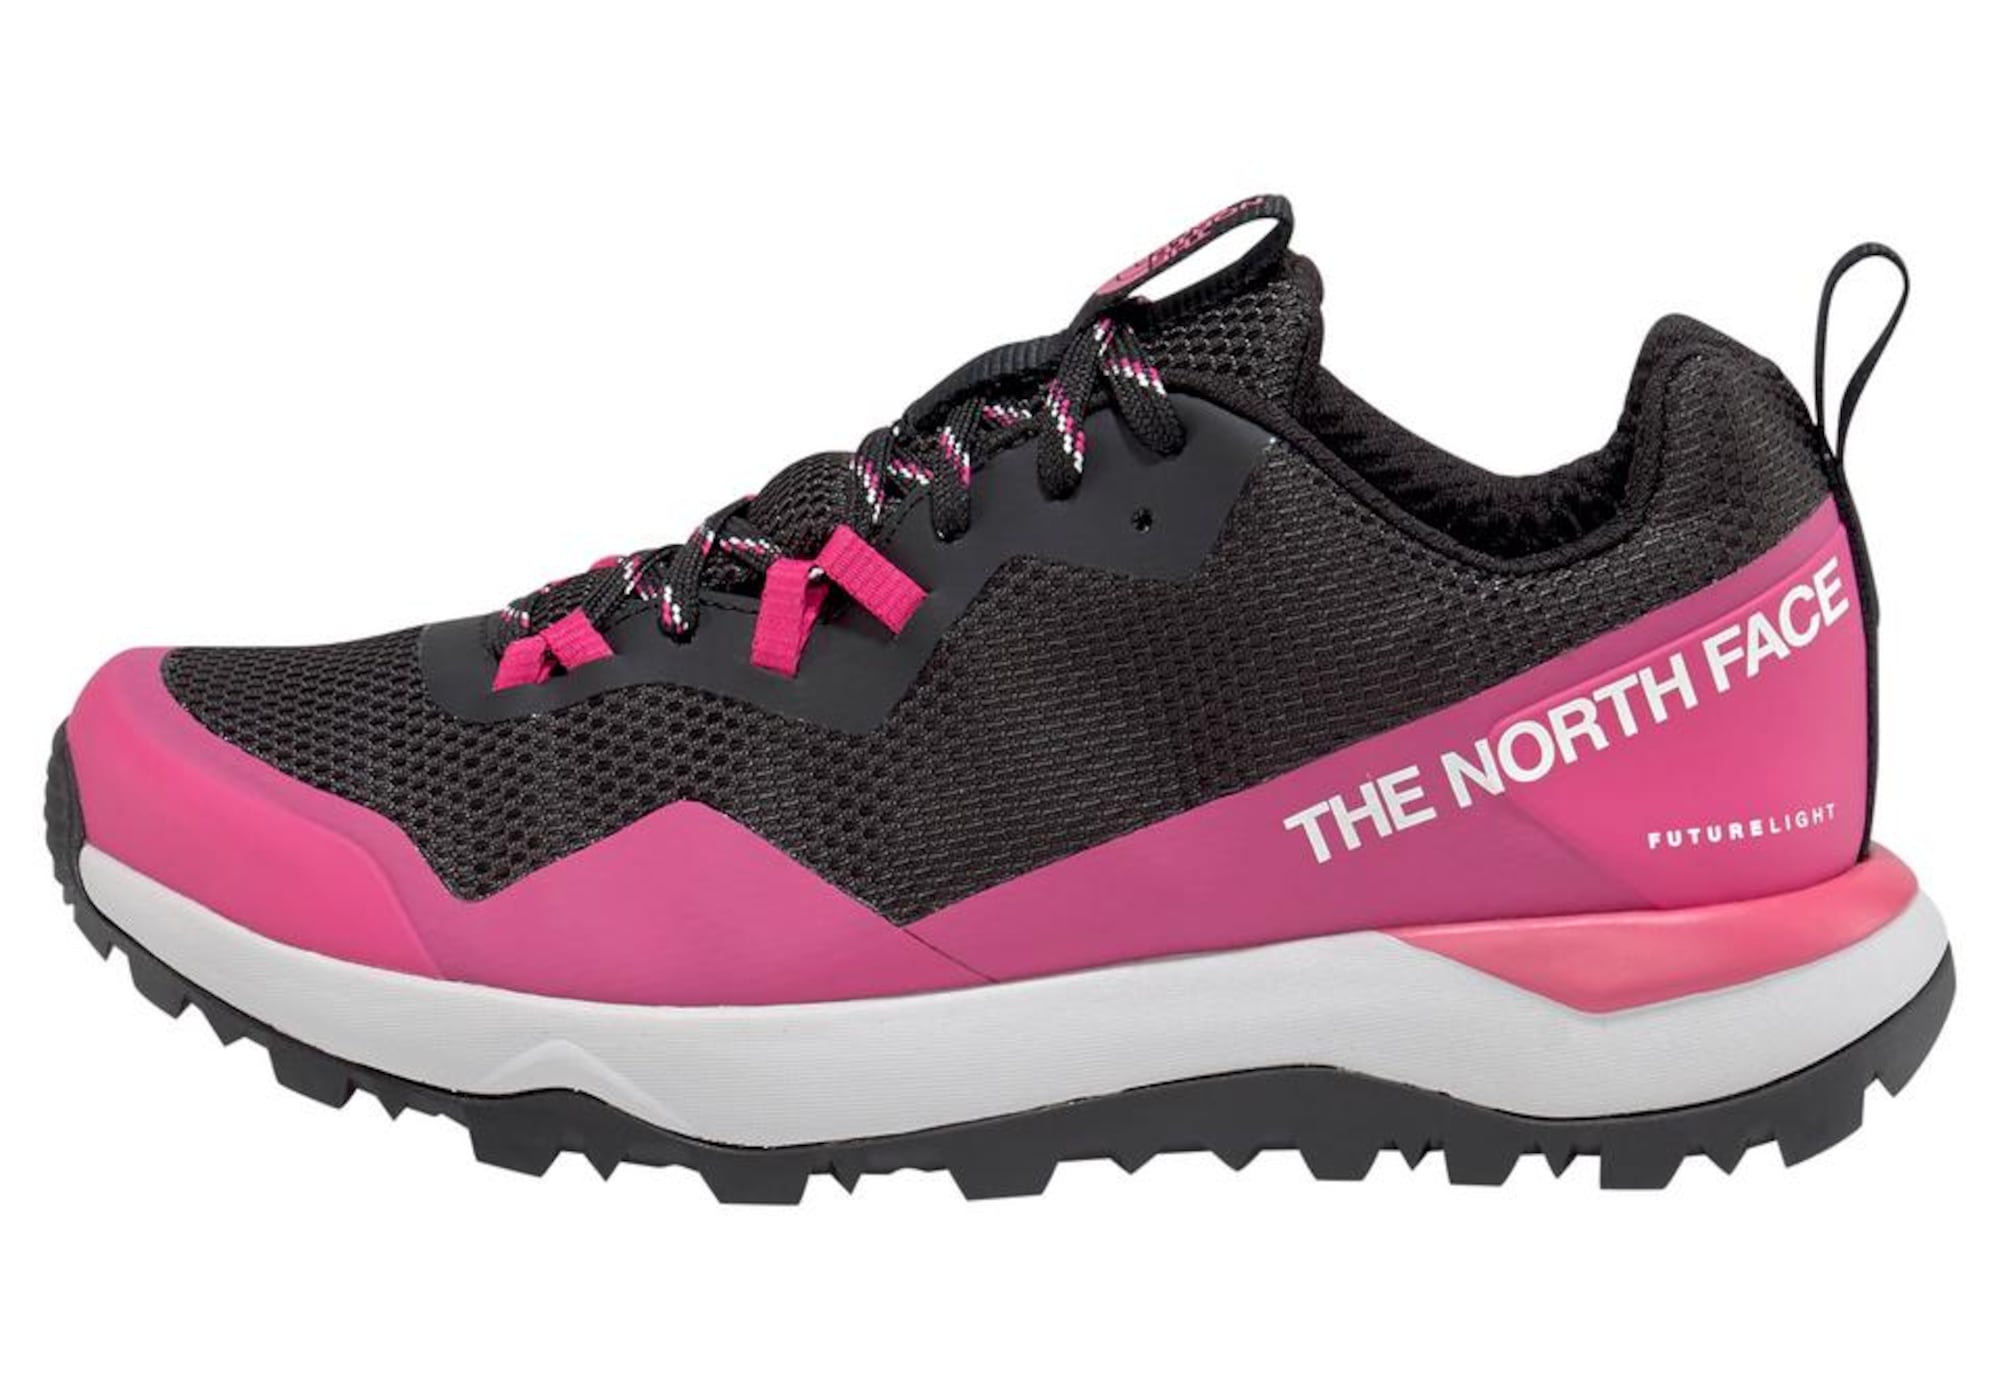 the north face - Wanderschuh